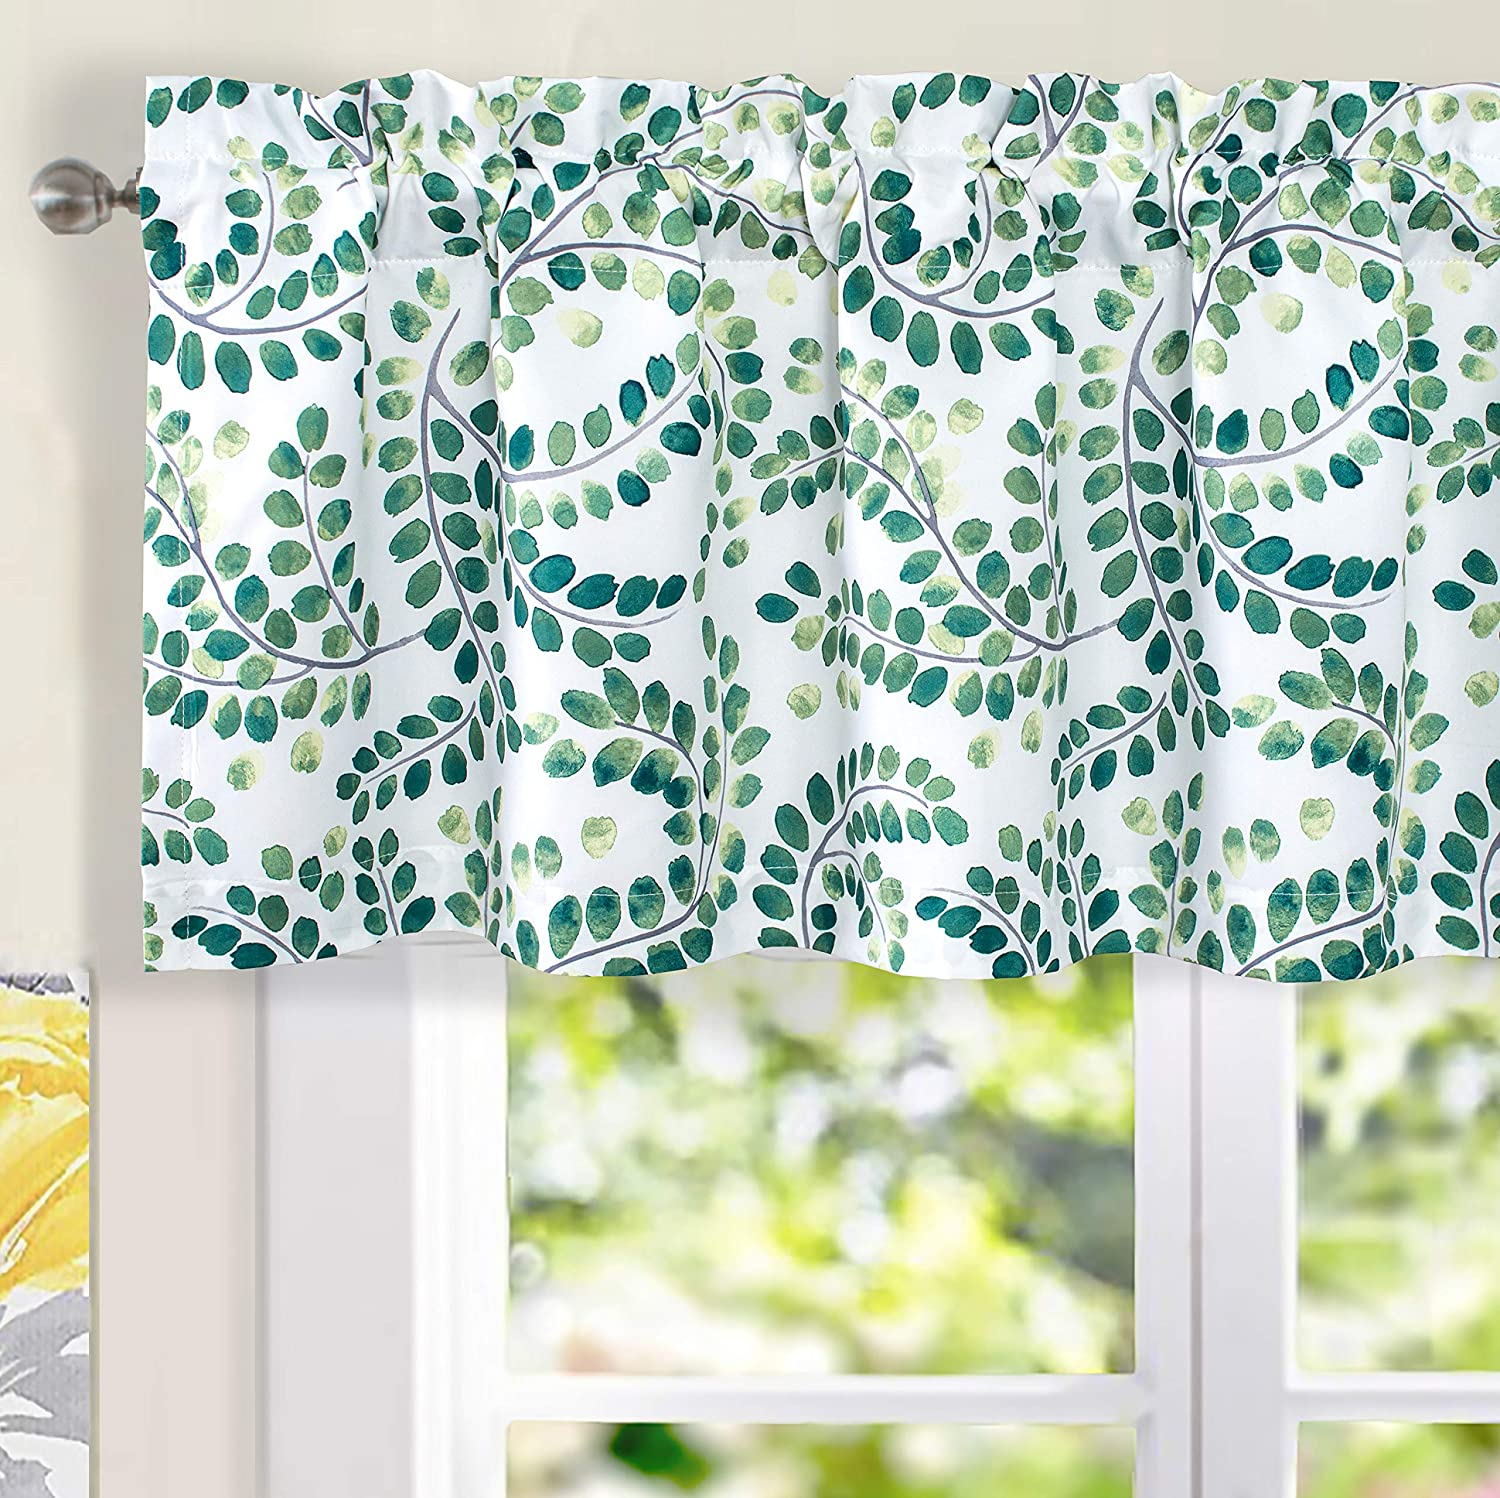 DriftAway Aleena Valance 2 Layers Room Darkening Blackout Valance for Cafe Kitchen Bedroom Living Room Bathroom Floral Scroll Window Treatment Valance 50 Inch by 18 Inch Plus 2 Inch Green White